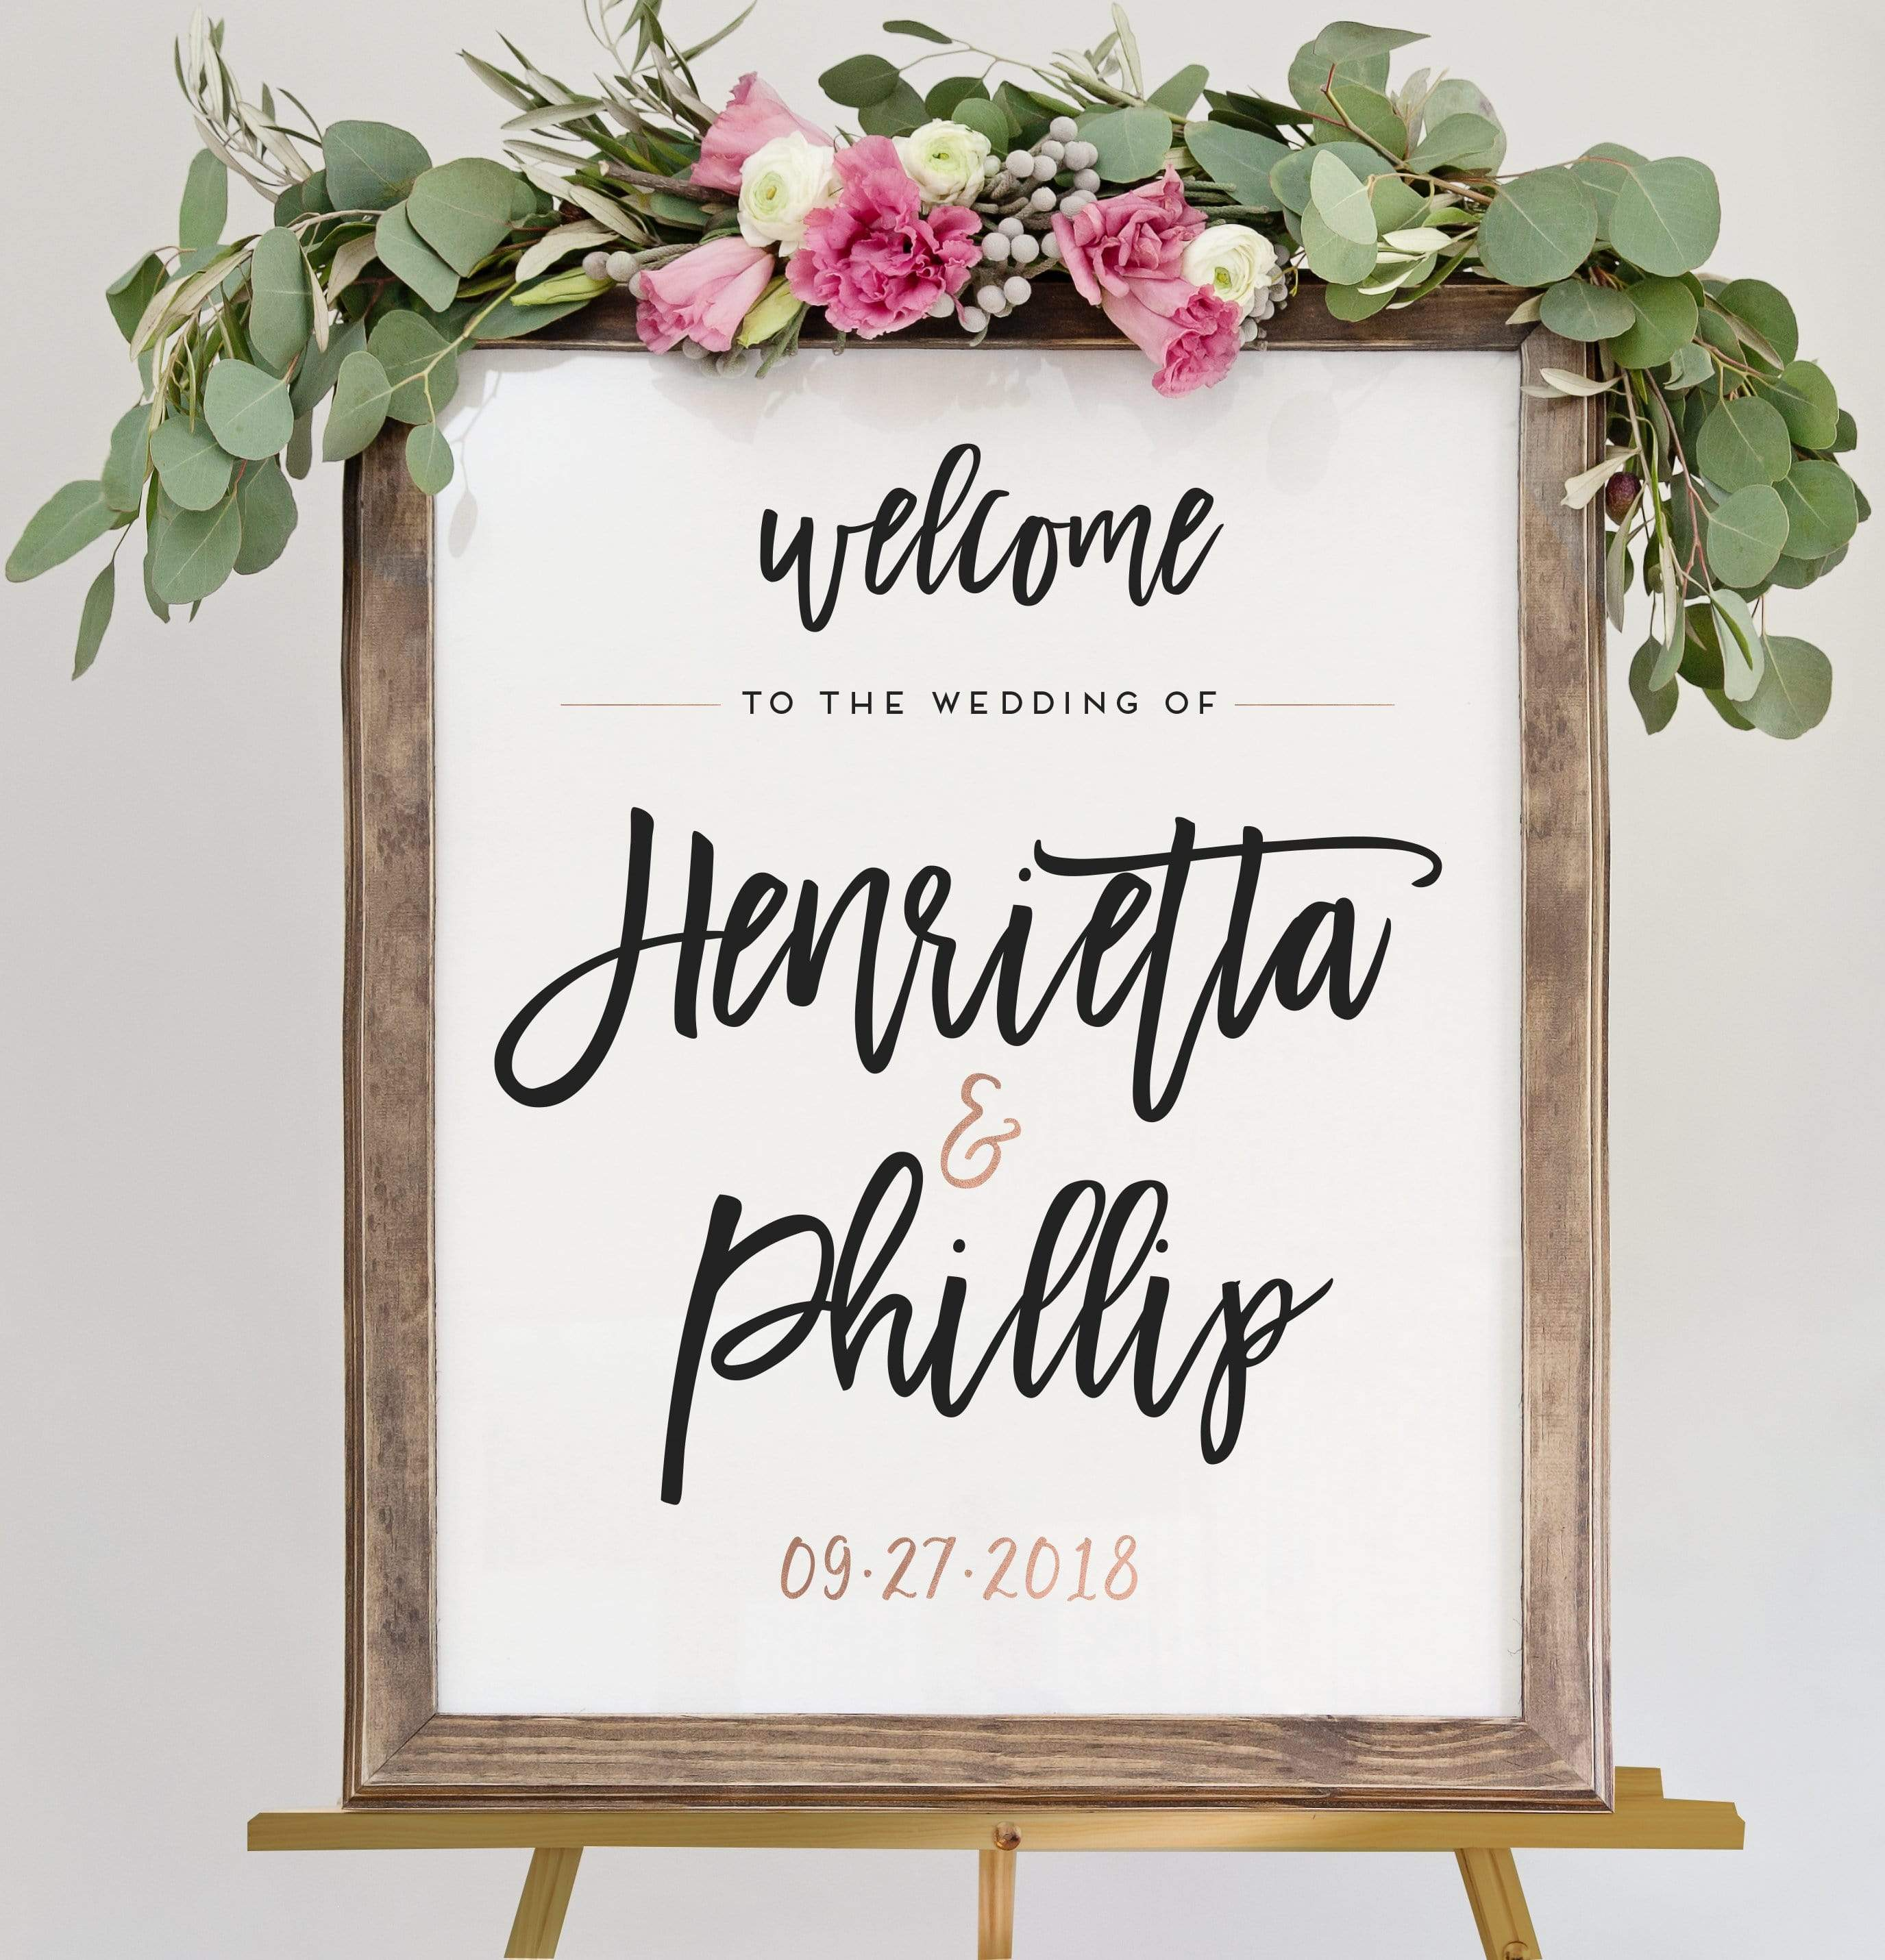 Wedding Welcome Sign - The Penny